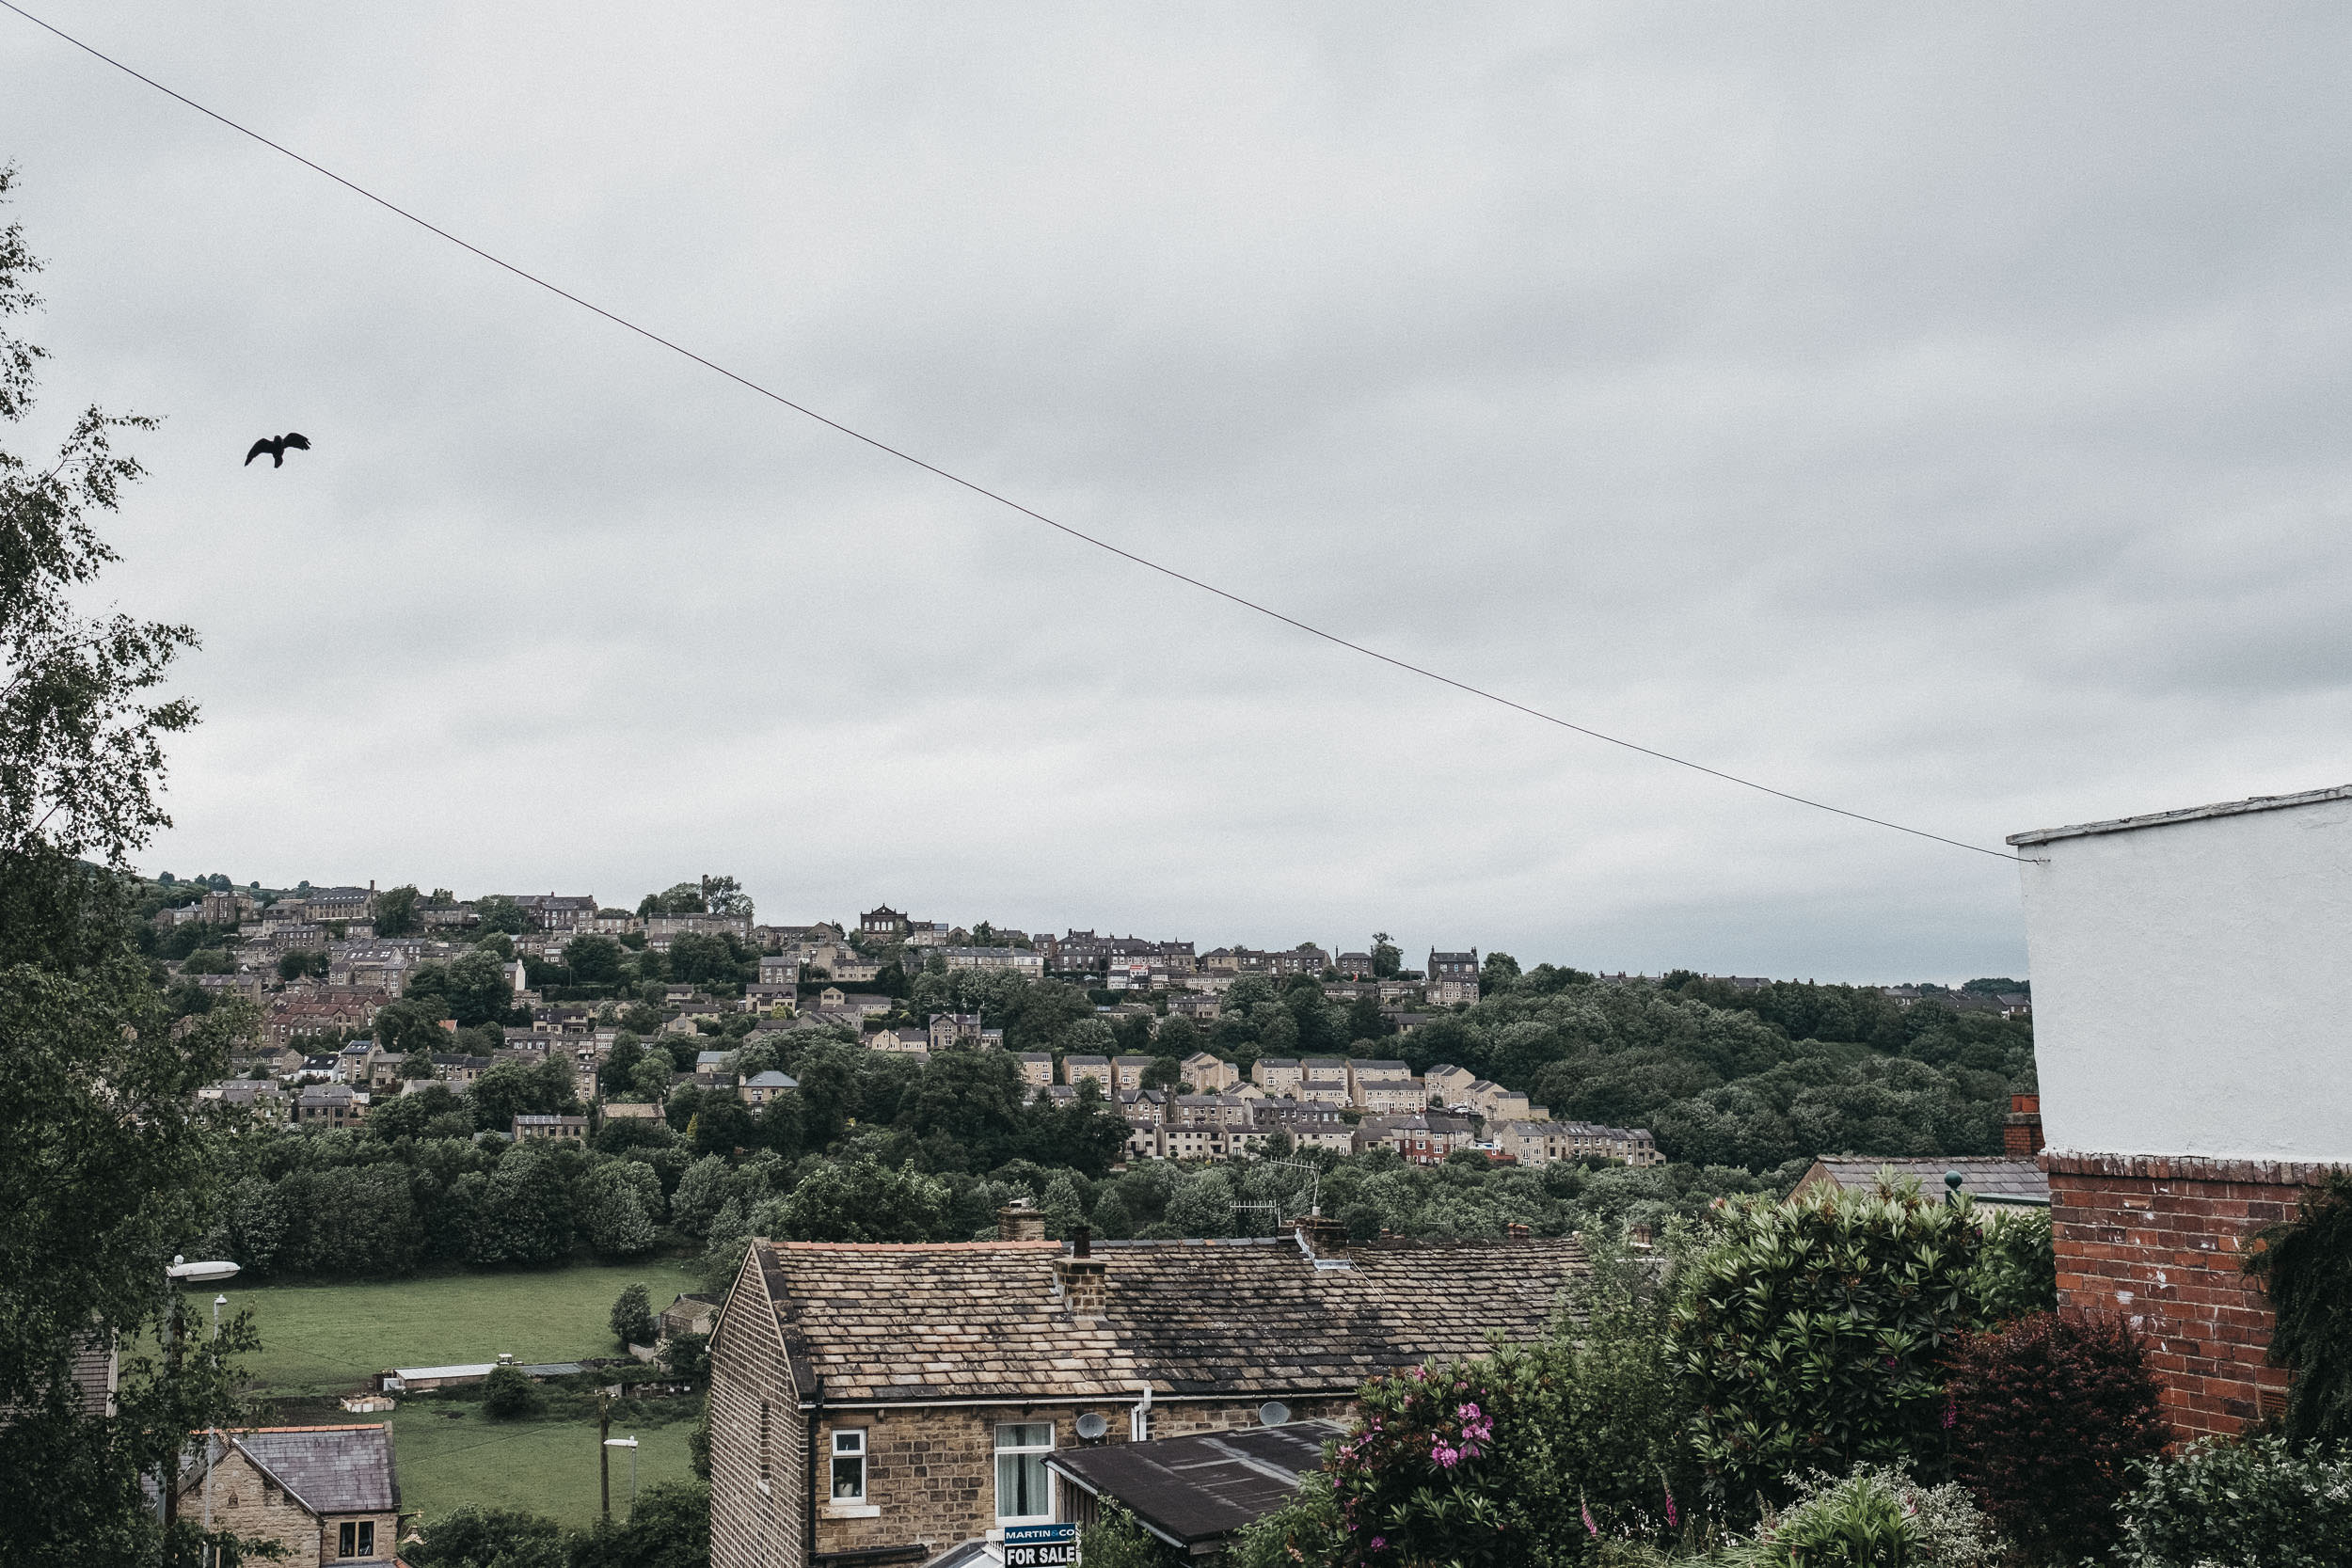 A village in Yorkshire with a bird flying above the houses